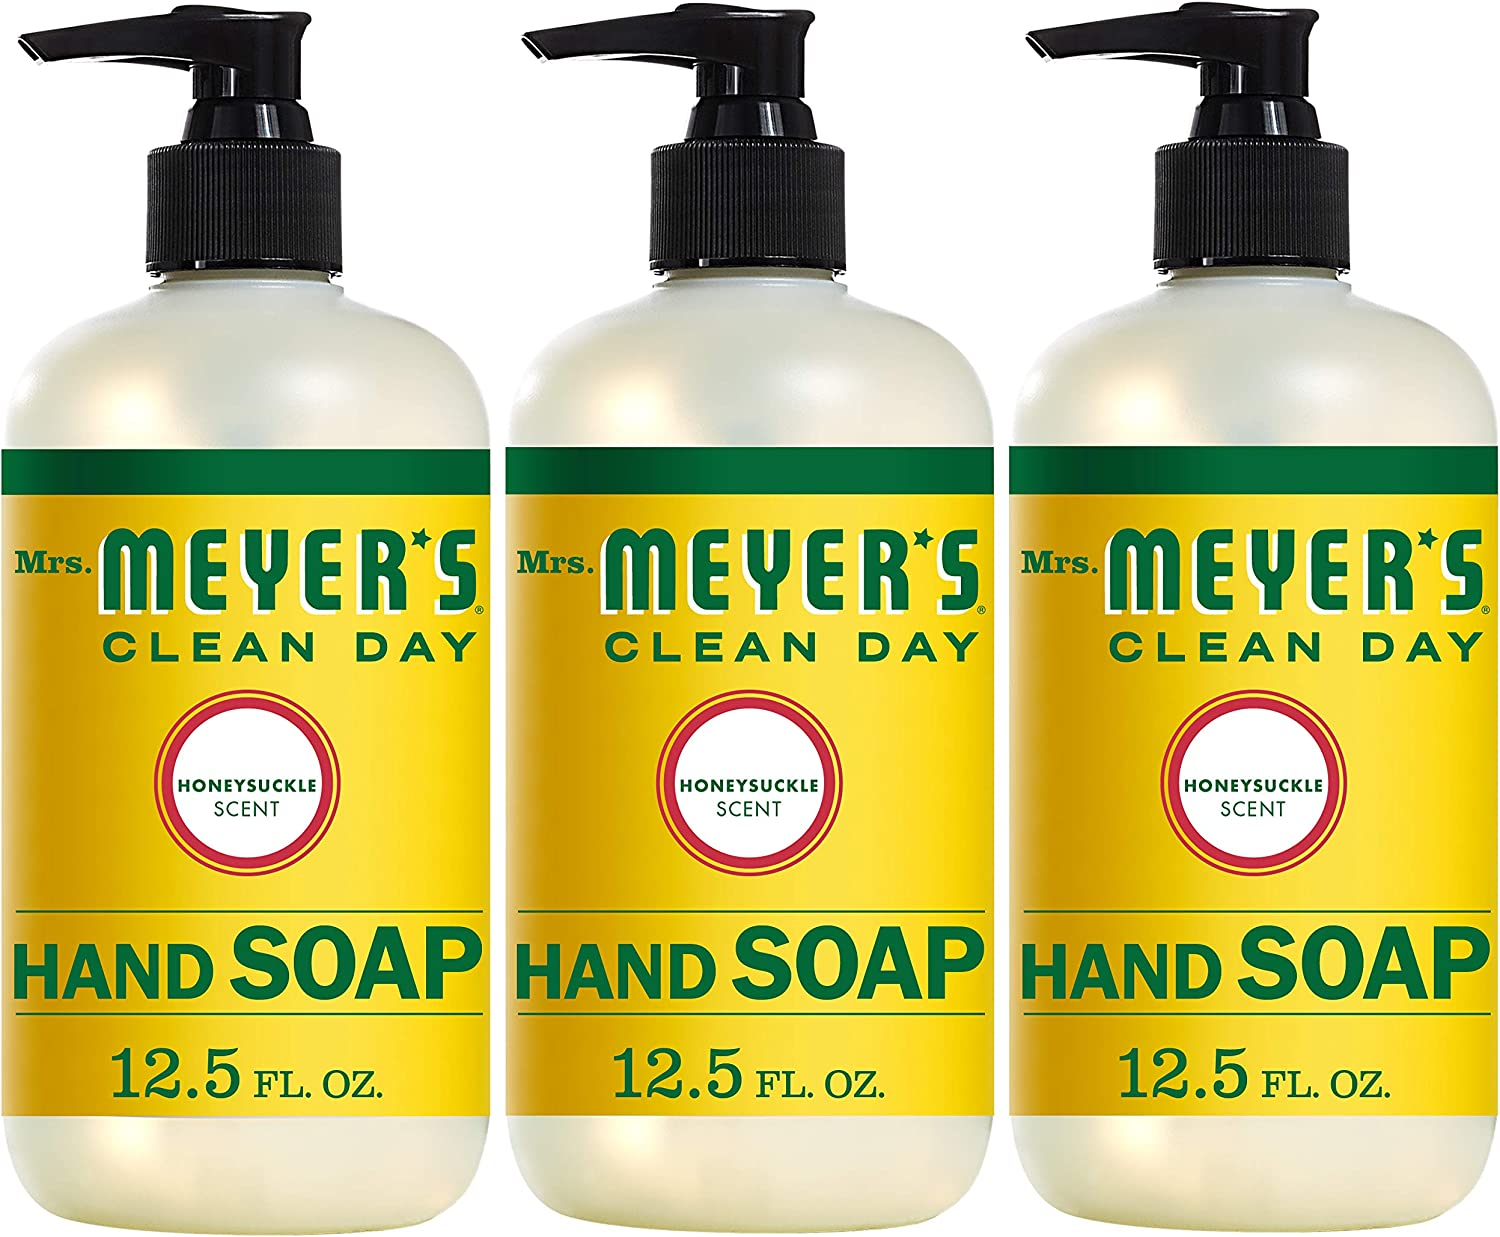 Meyers Clean Day Hand Soap